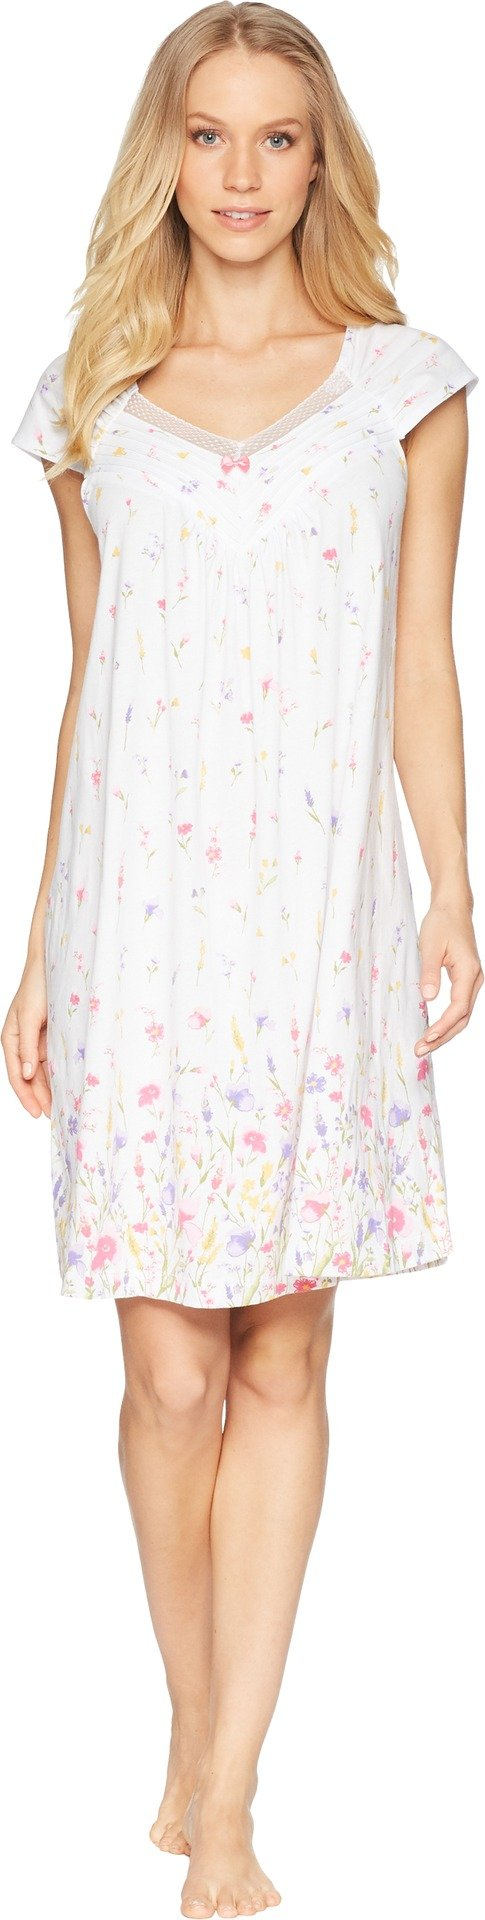 Carole Hochman Women's Meadow Flower Robe and Chemise Travel Set, Meadow Floral Border, S